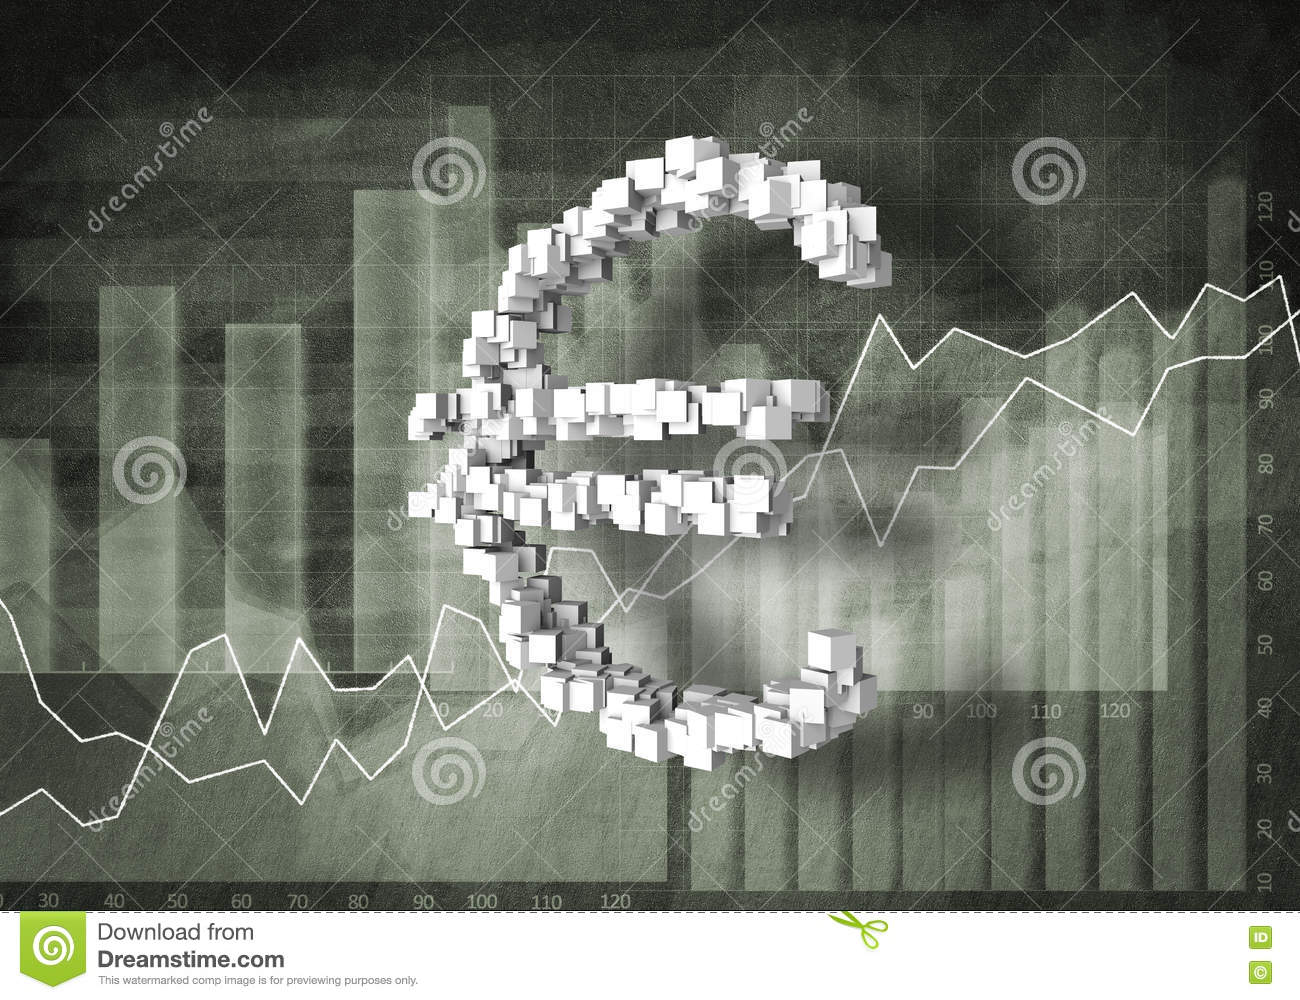 Euro currency rate stock image image of information 73337797 euro currency rate buycottarizona Choice Image